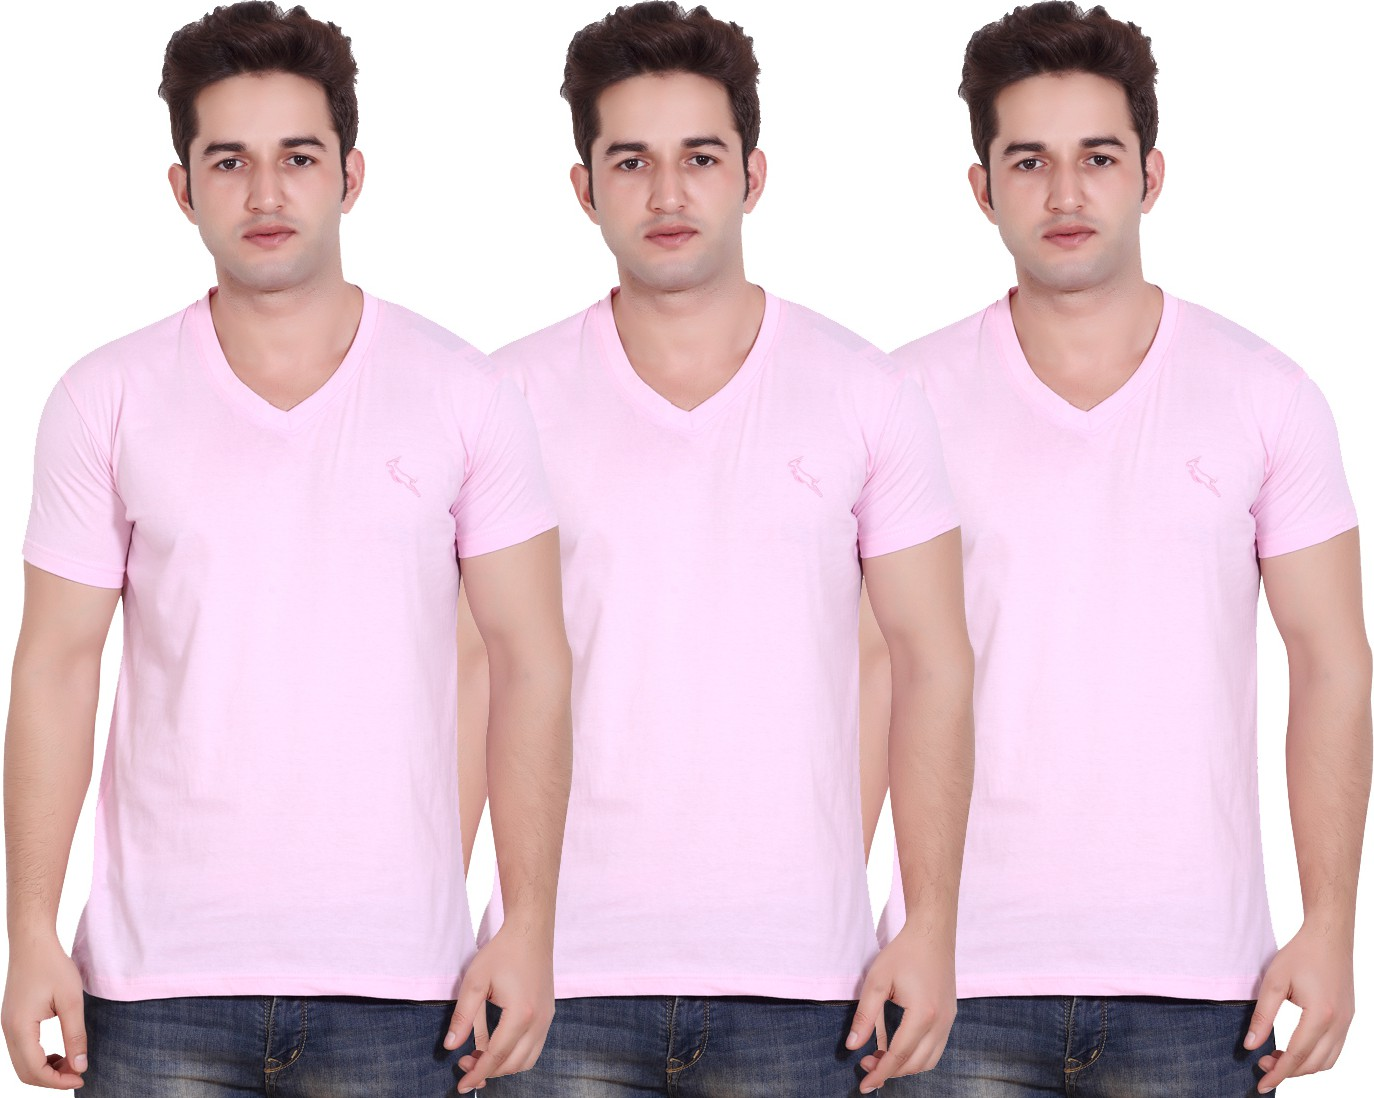 LUCfashion Solid Men's V-neck Pink T-Shirt(Pack of 3) - Casual Wear